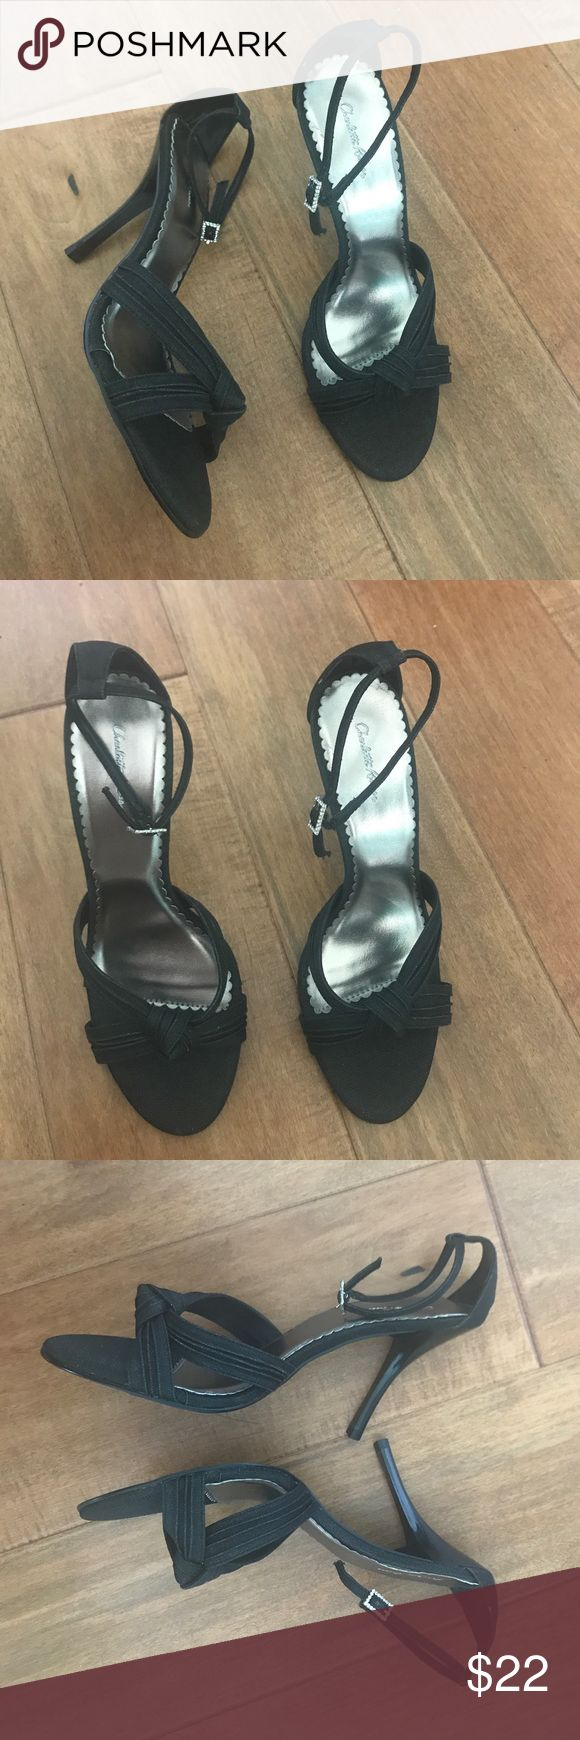 """NWT Charlotte Russe Heels Brand new and never worn. Charlotte Russe heels. Size 9. Black sparkly color. Ankle strap has rhinestone clasp design. Heel measures 3.5"""" inches tall. Charlotte Russe Shoes Heels"""